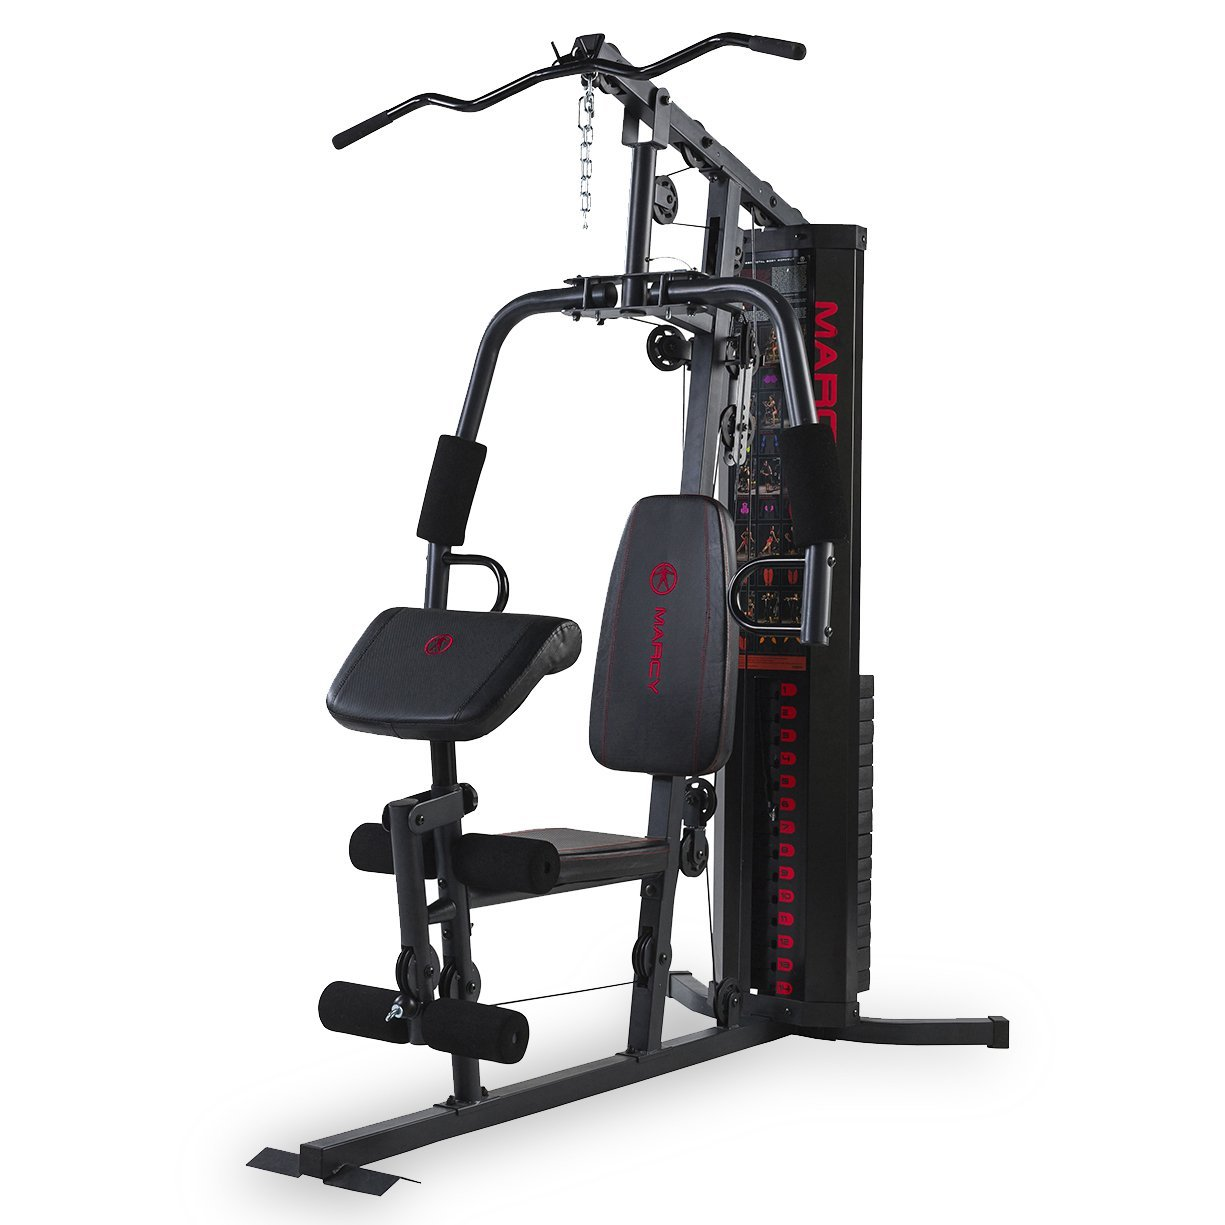 Marcy eclipse hg compact home gym review multi